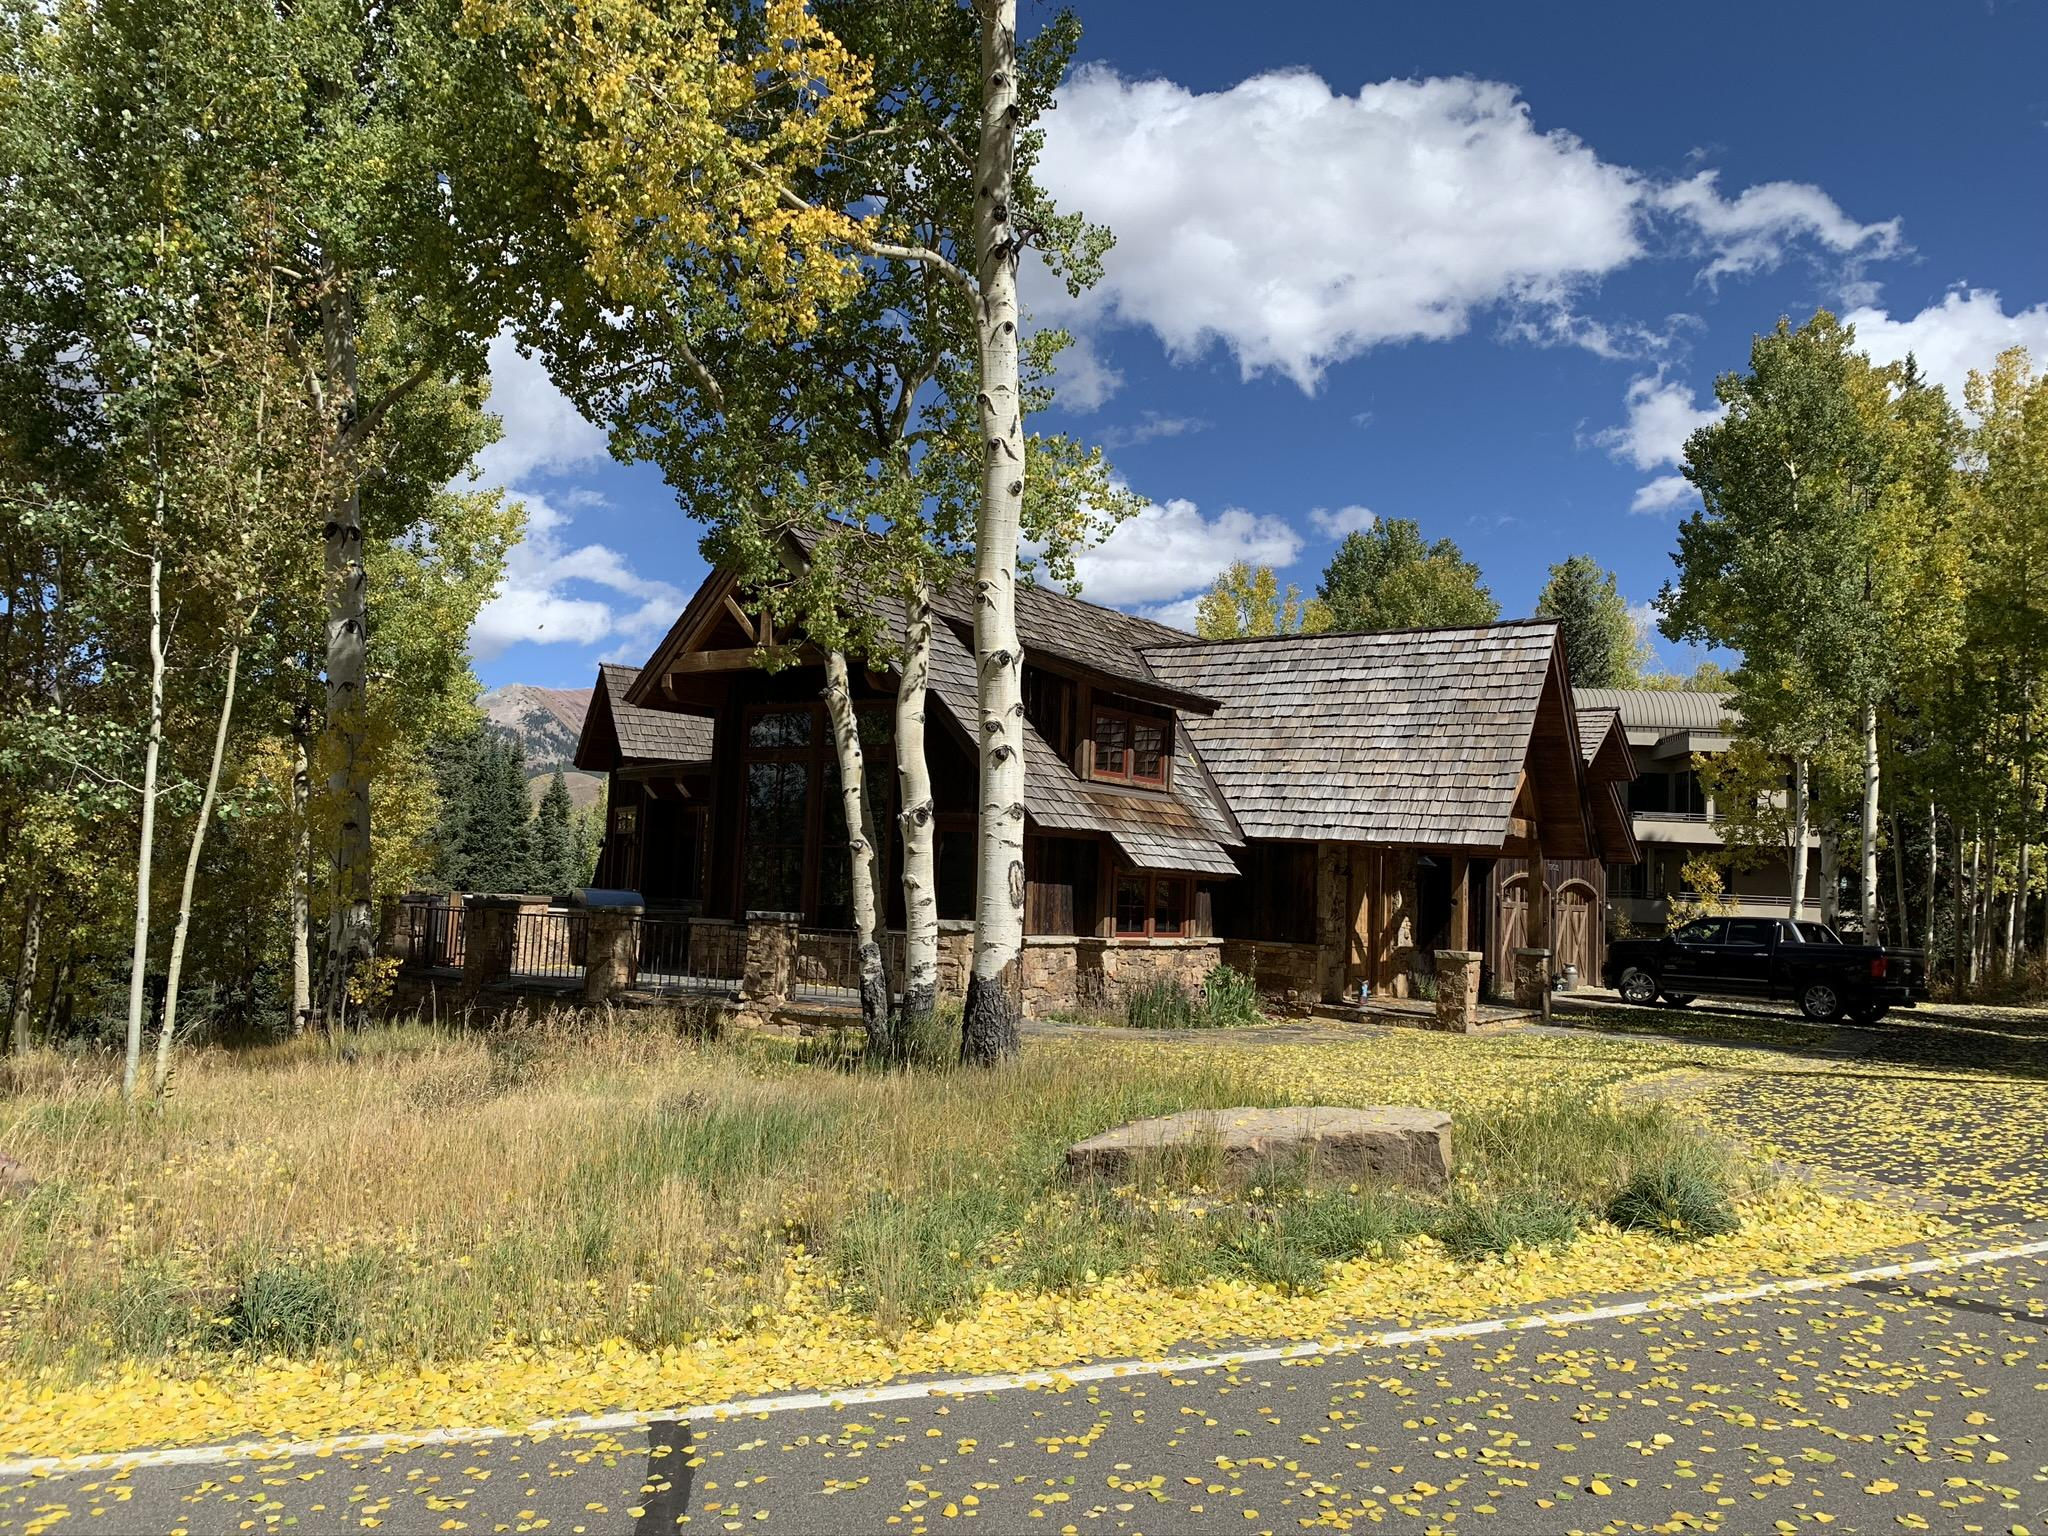 Near By Amenities To Consider When Buying In Crested Butte